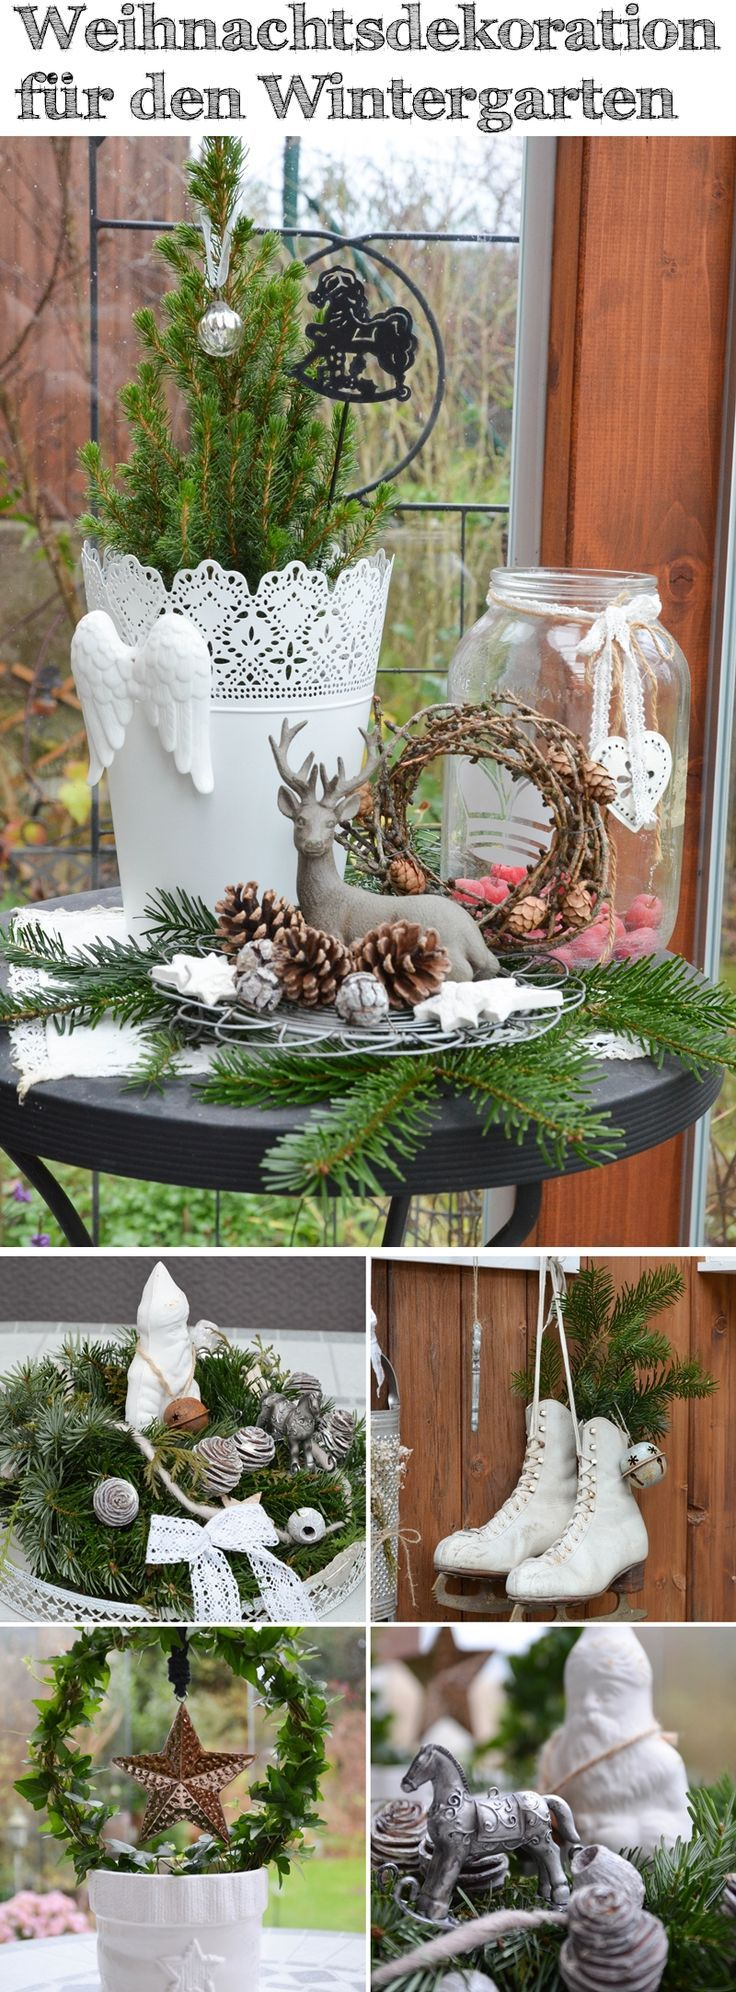 Christmas decoration for the winter garden ...- Weihnachtsdekoration für den Wintergarten  Christmas decoration for the winter garden   -#christmasornamentsclipart